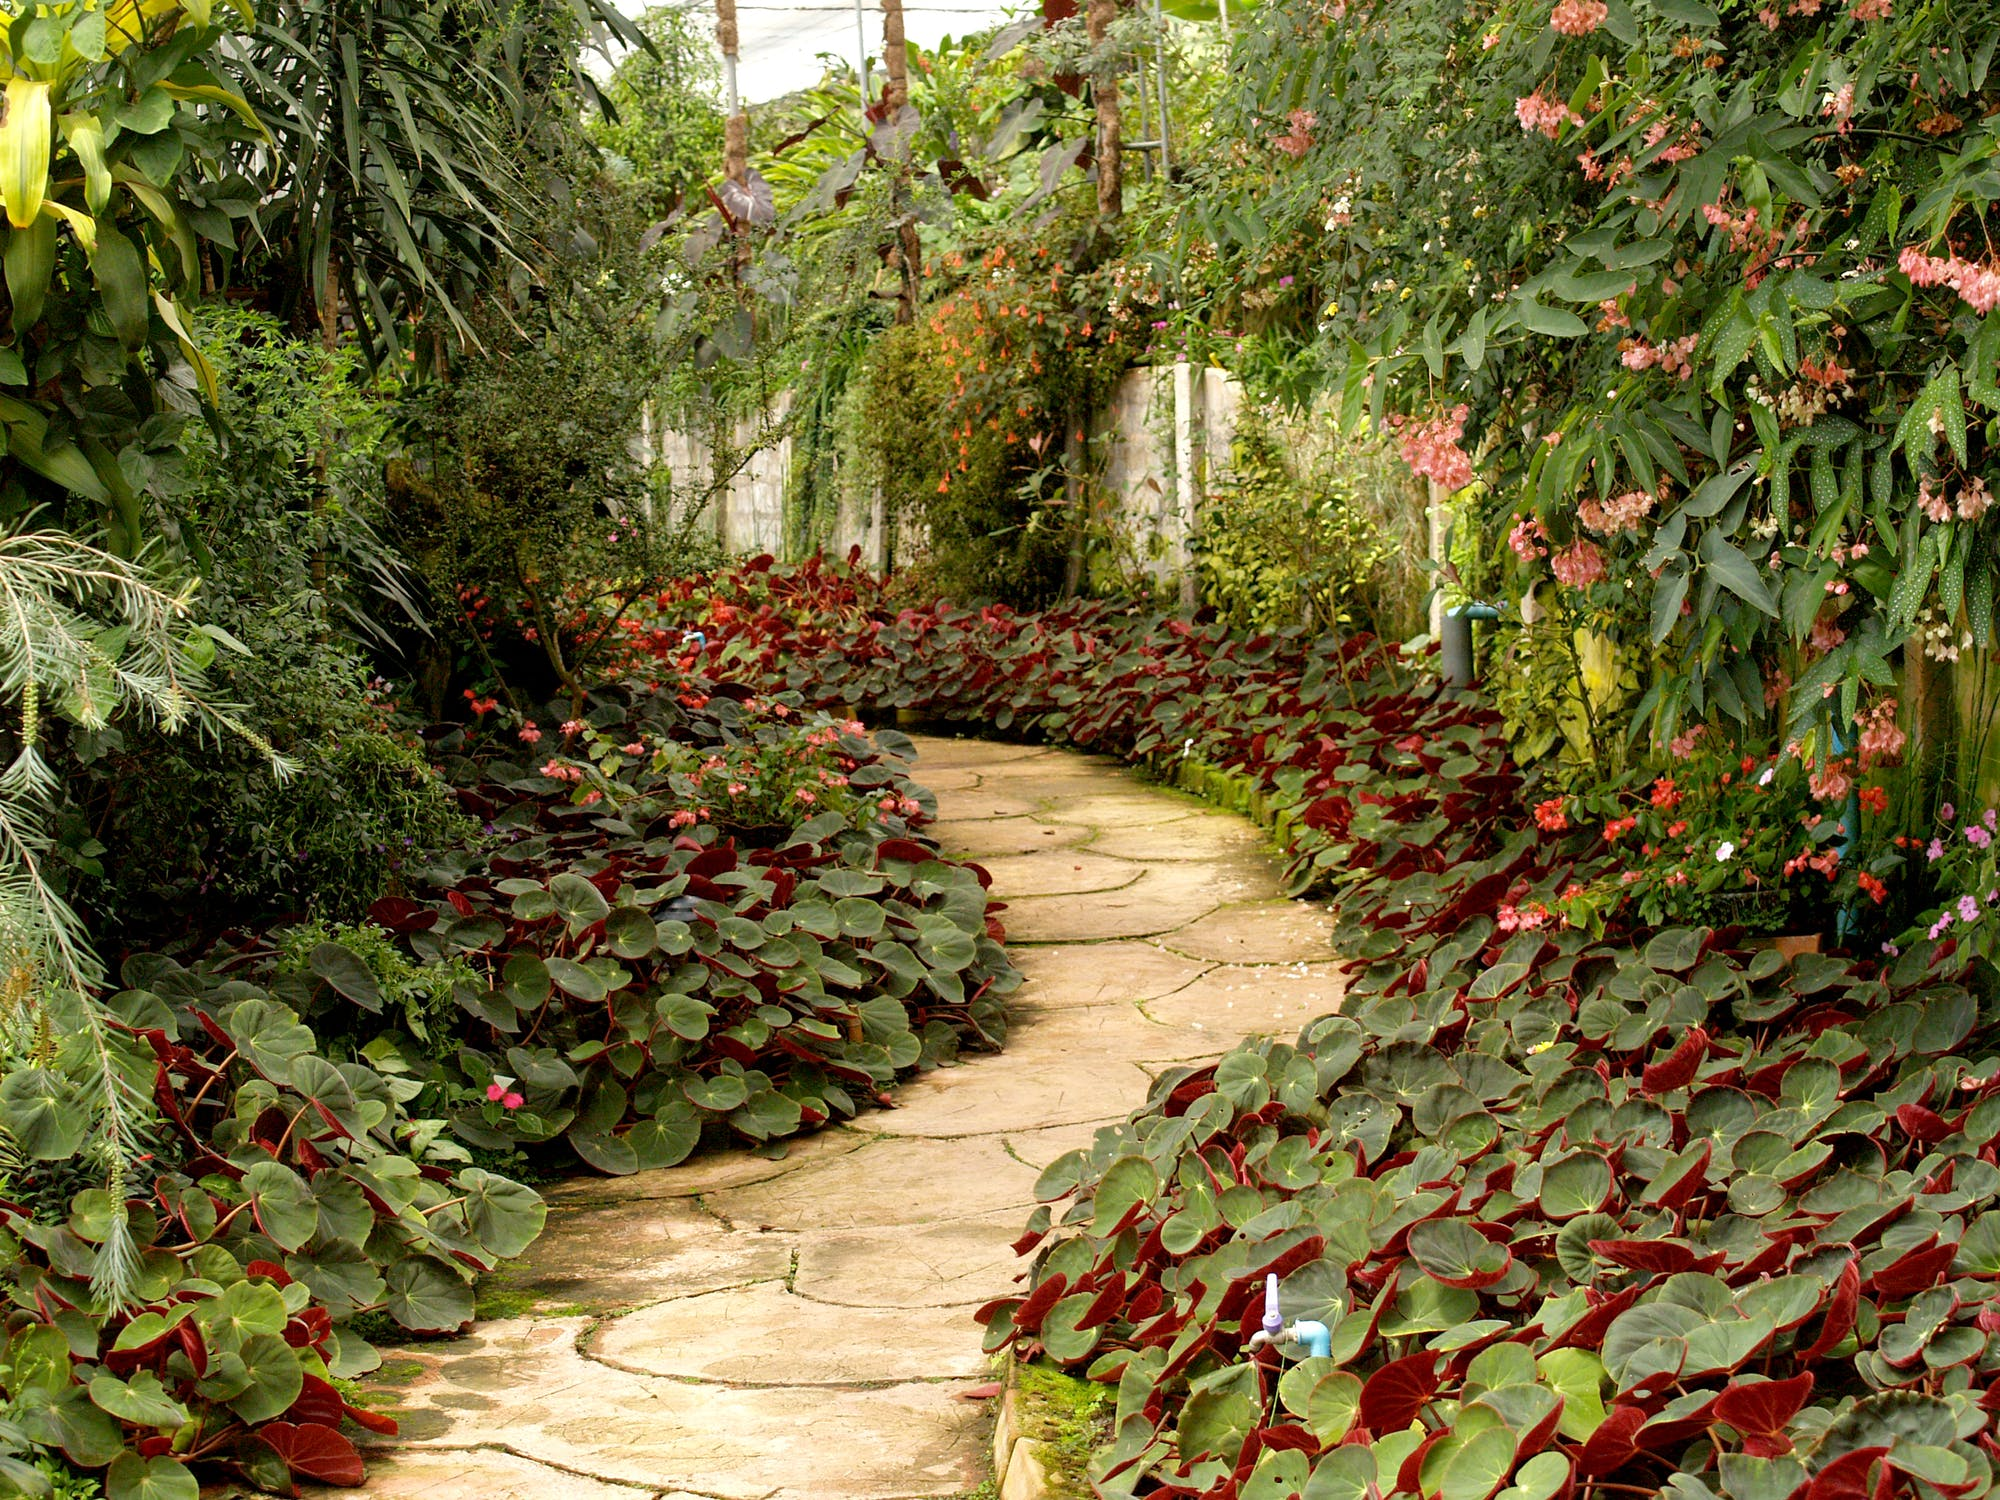 garden path lined with green shrubs and trees